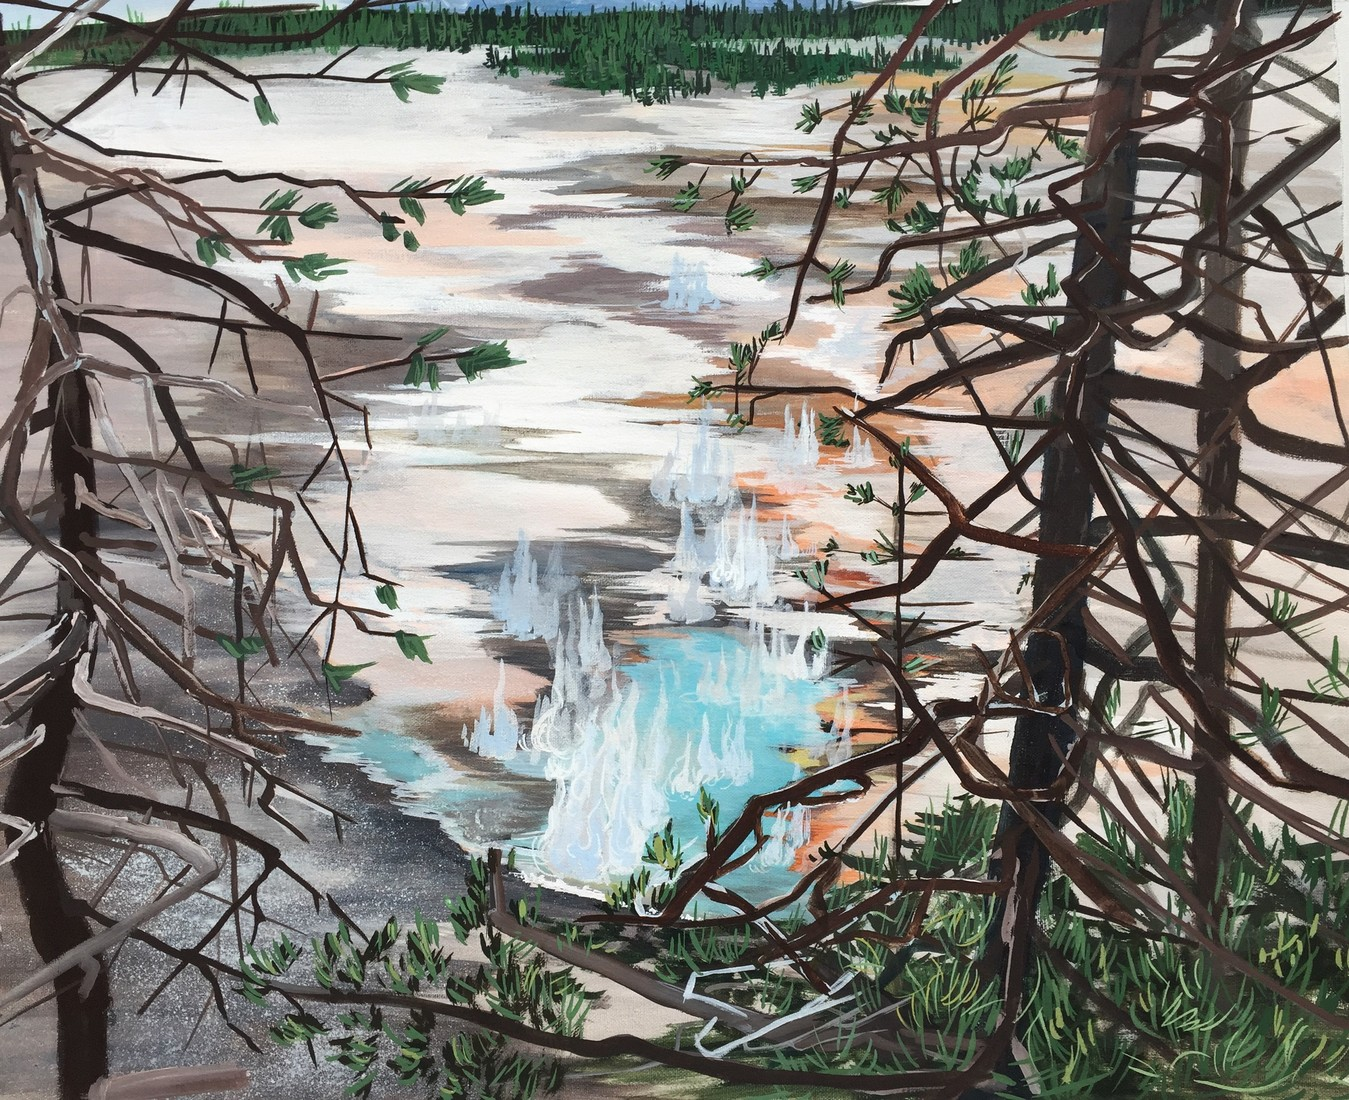 Paintings Norris Geyser Basin (Yellowstone)